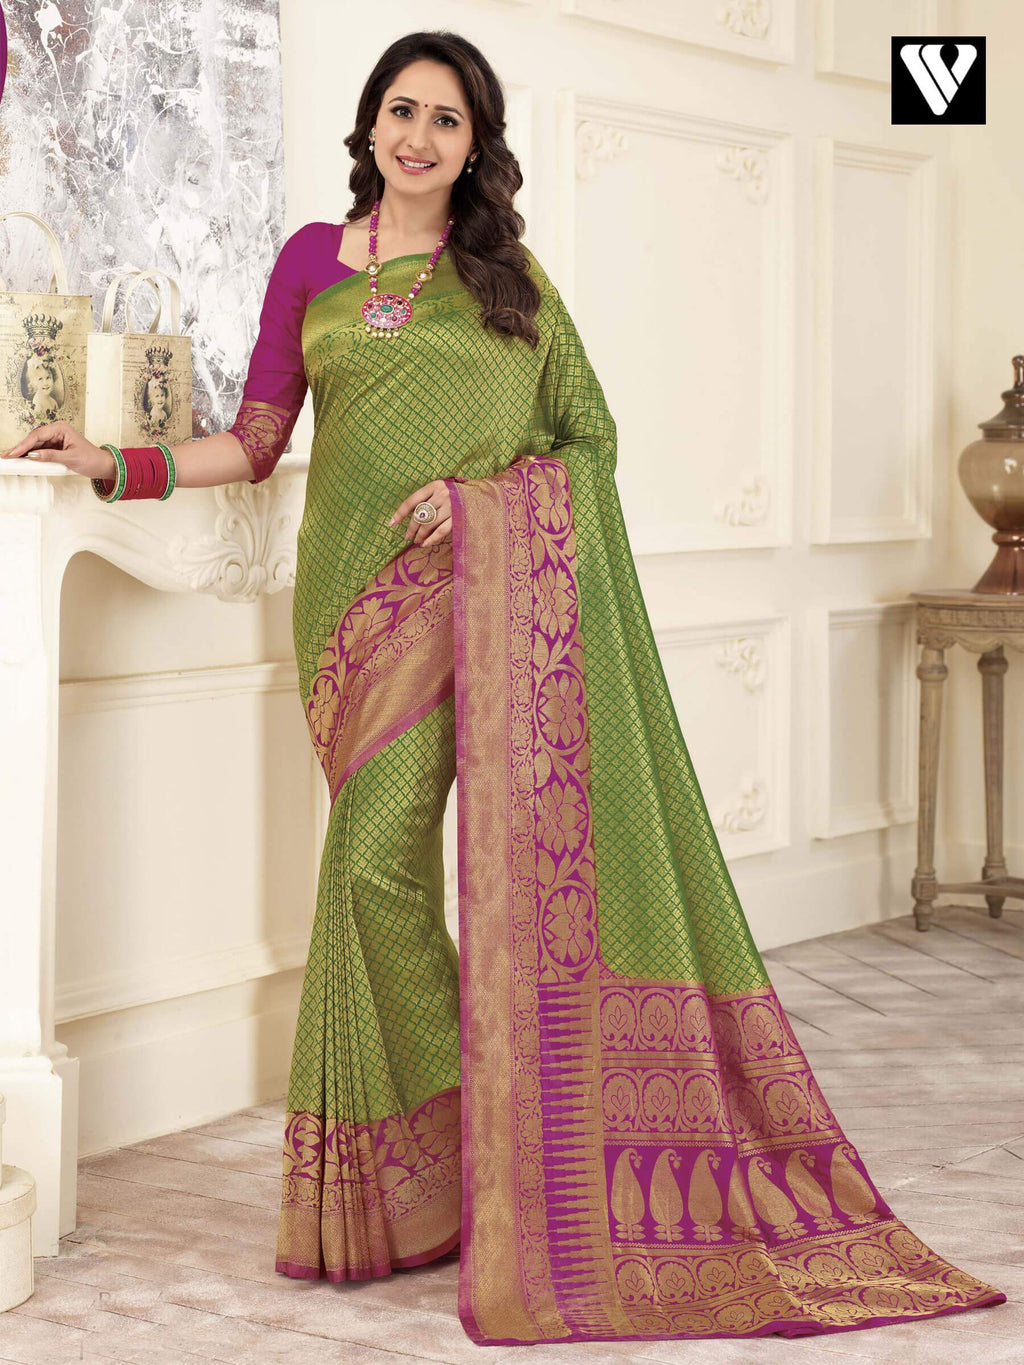 Designer Latest Banarasi Art Silk Sarees In Green Gold